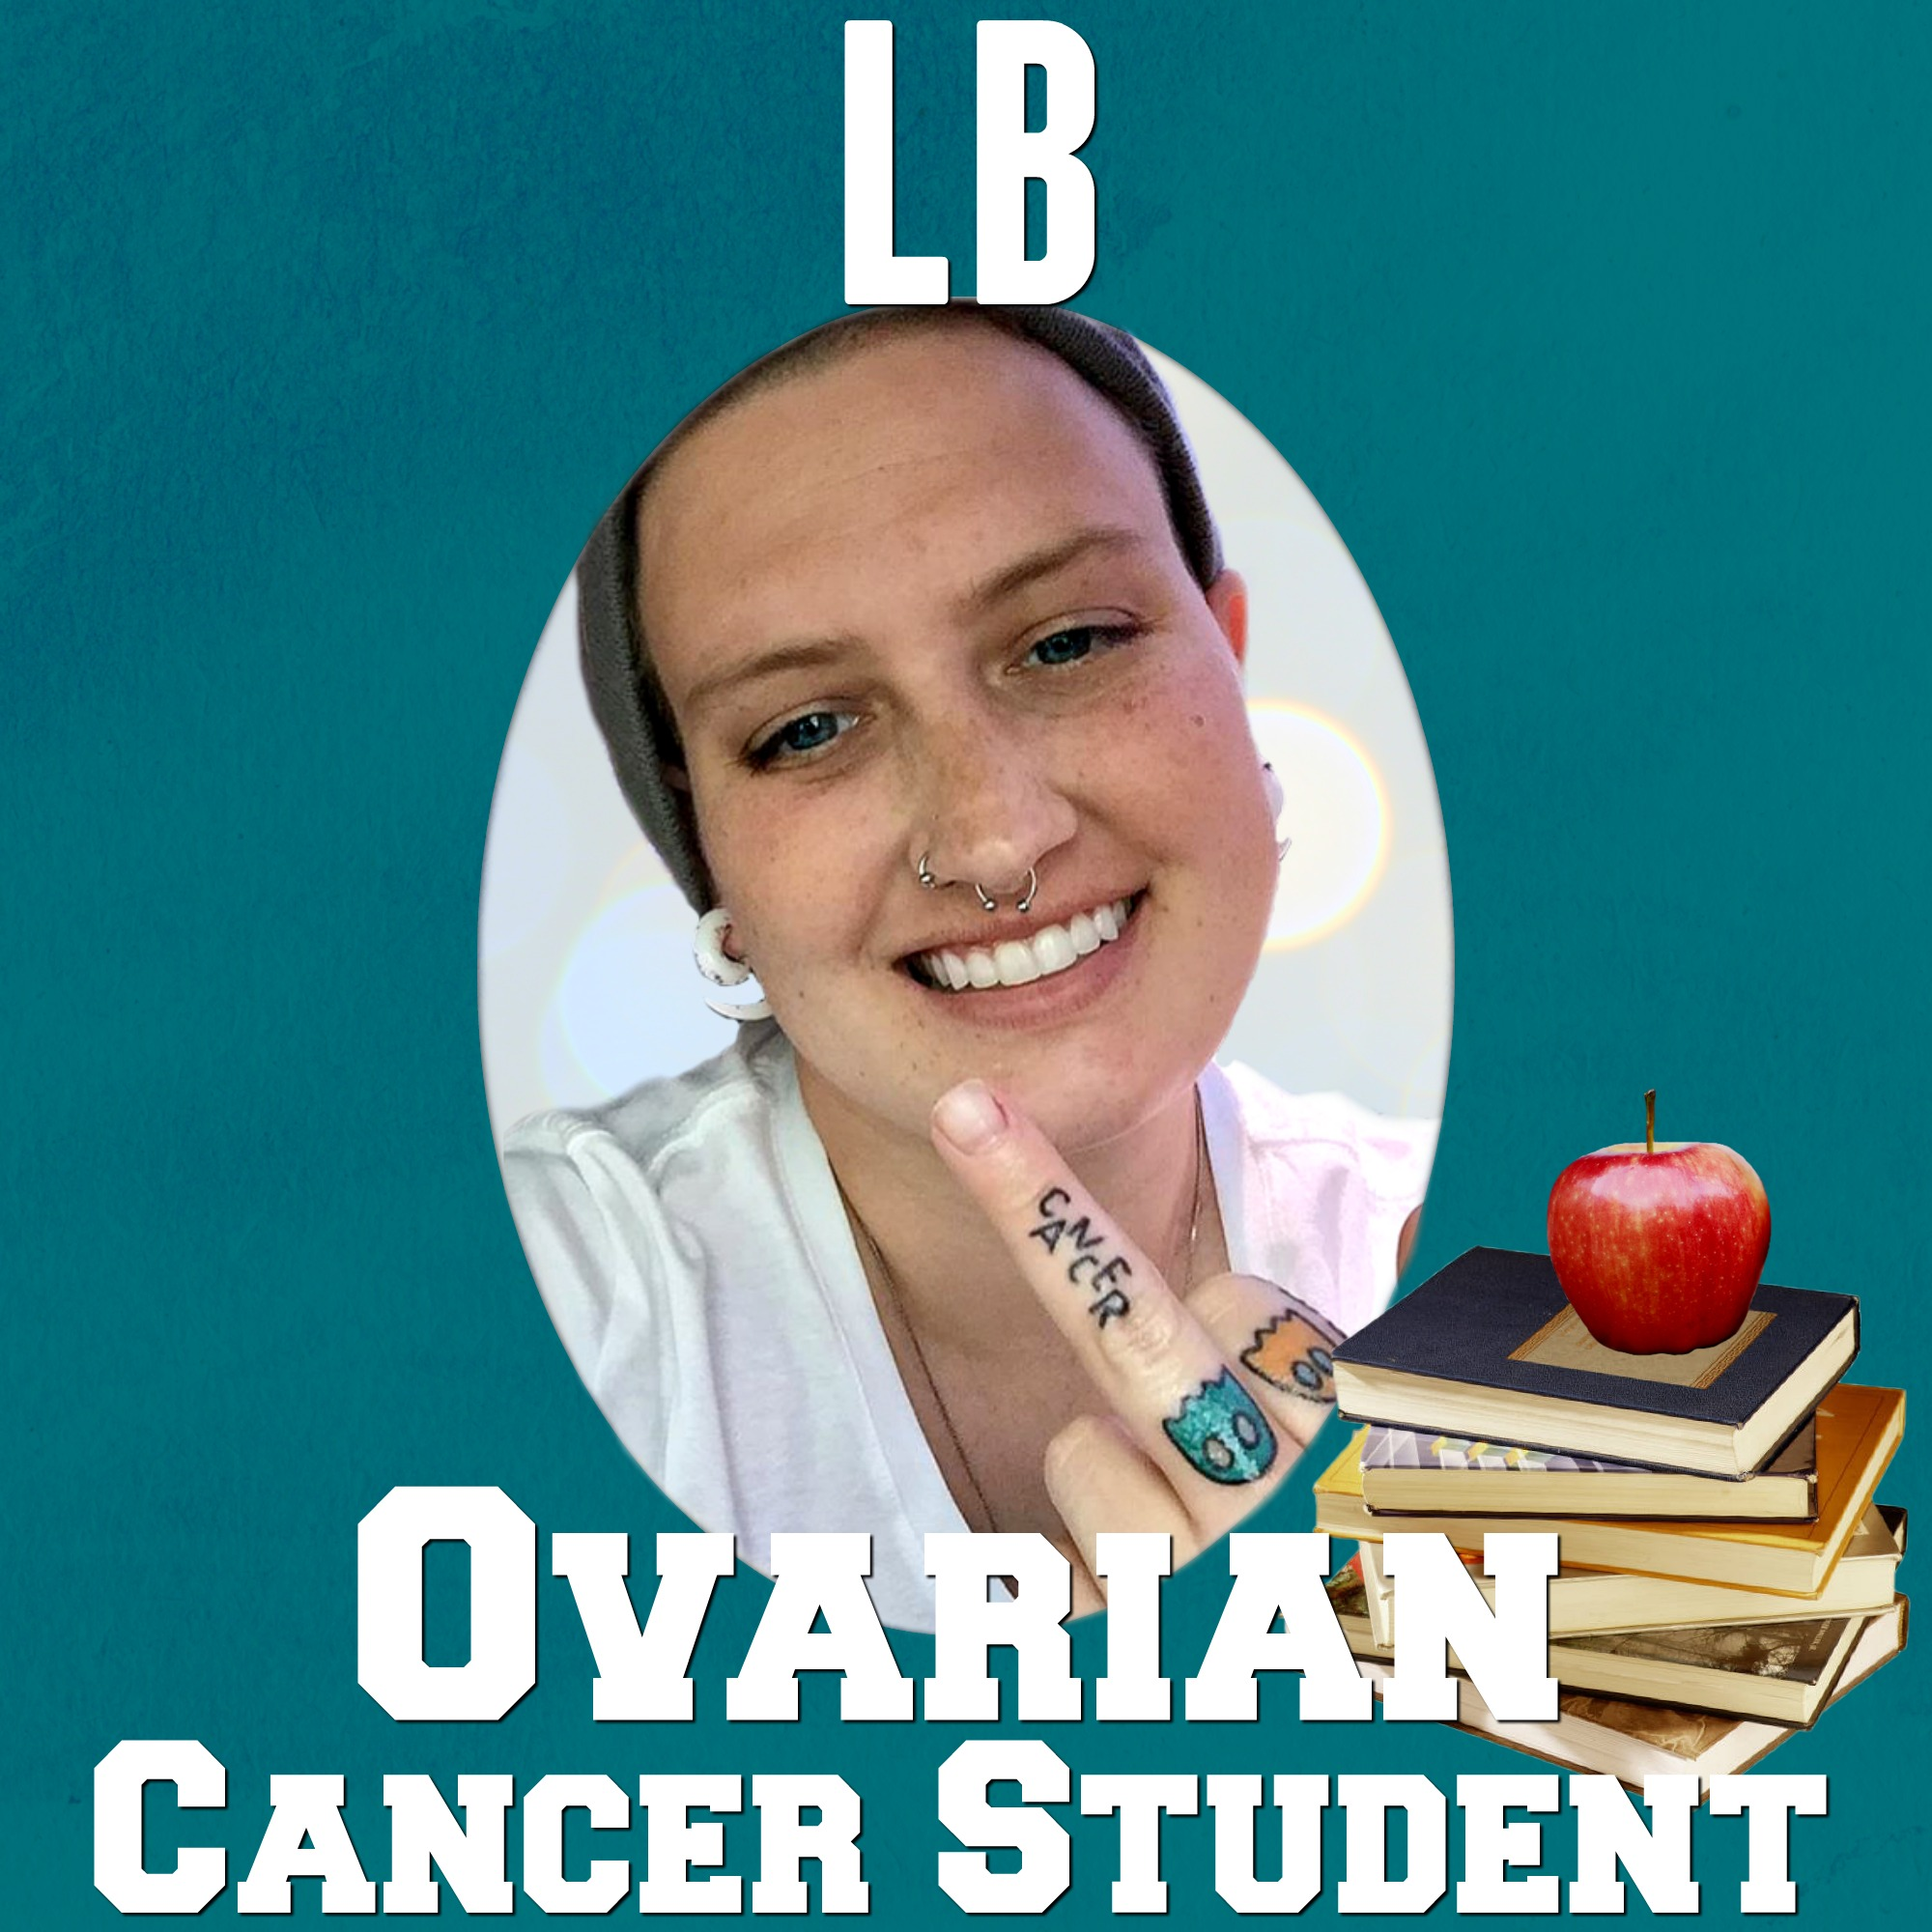 LB Ovarian Cancer Student CancerGrad Yearbook